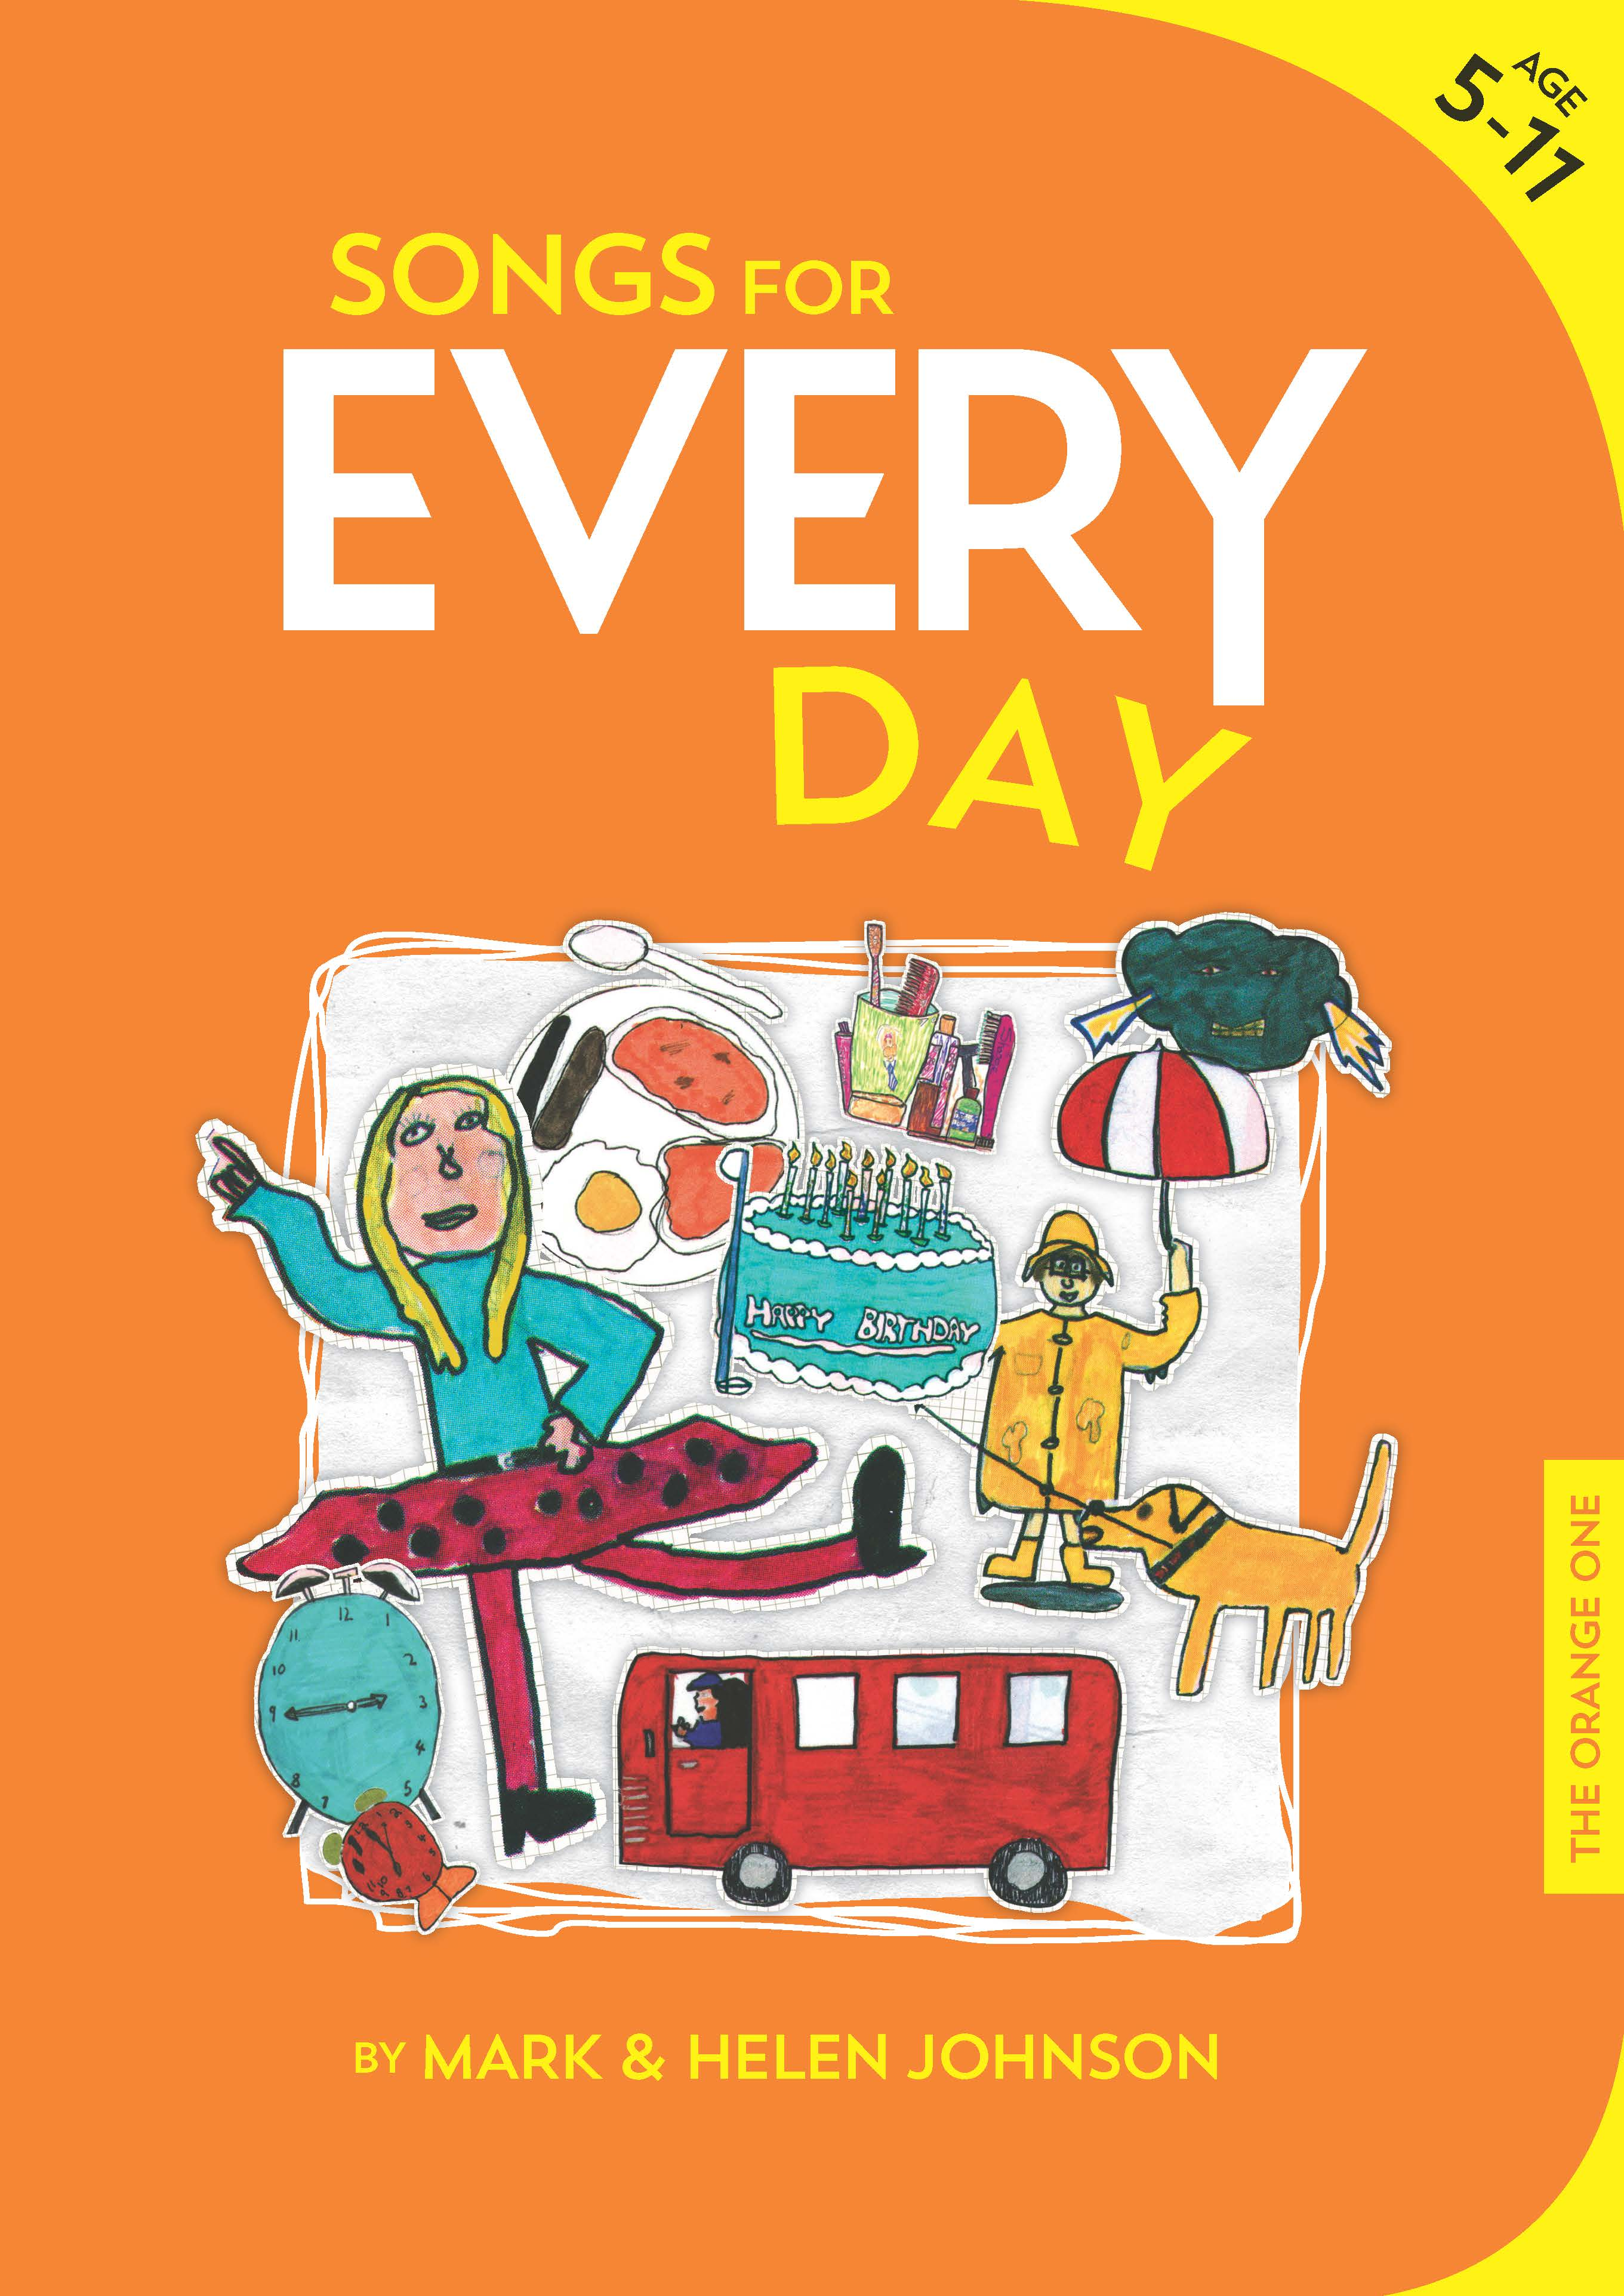 Songs for EVERY Day   School Songs   Out of the Ark Music